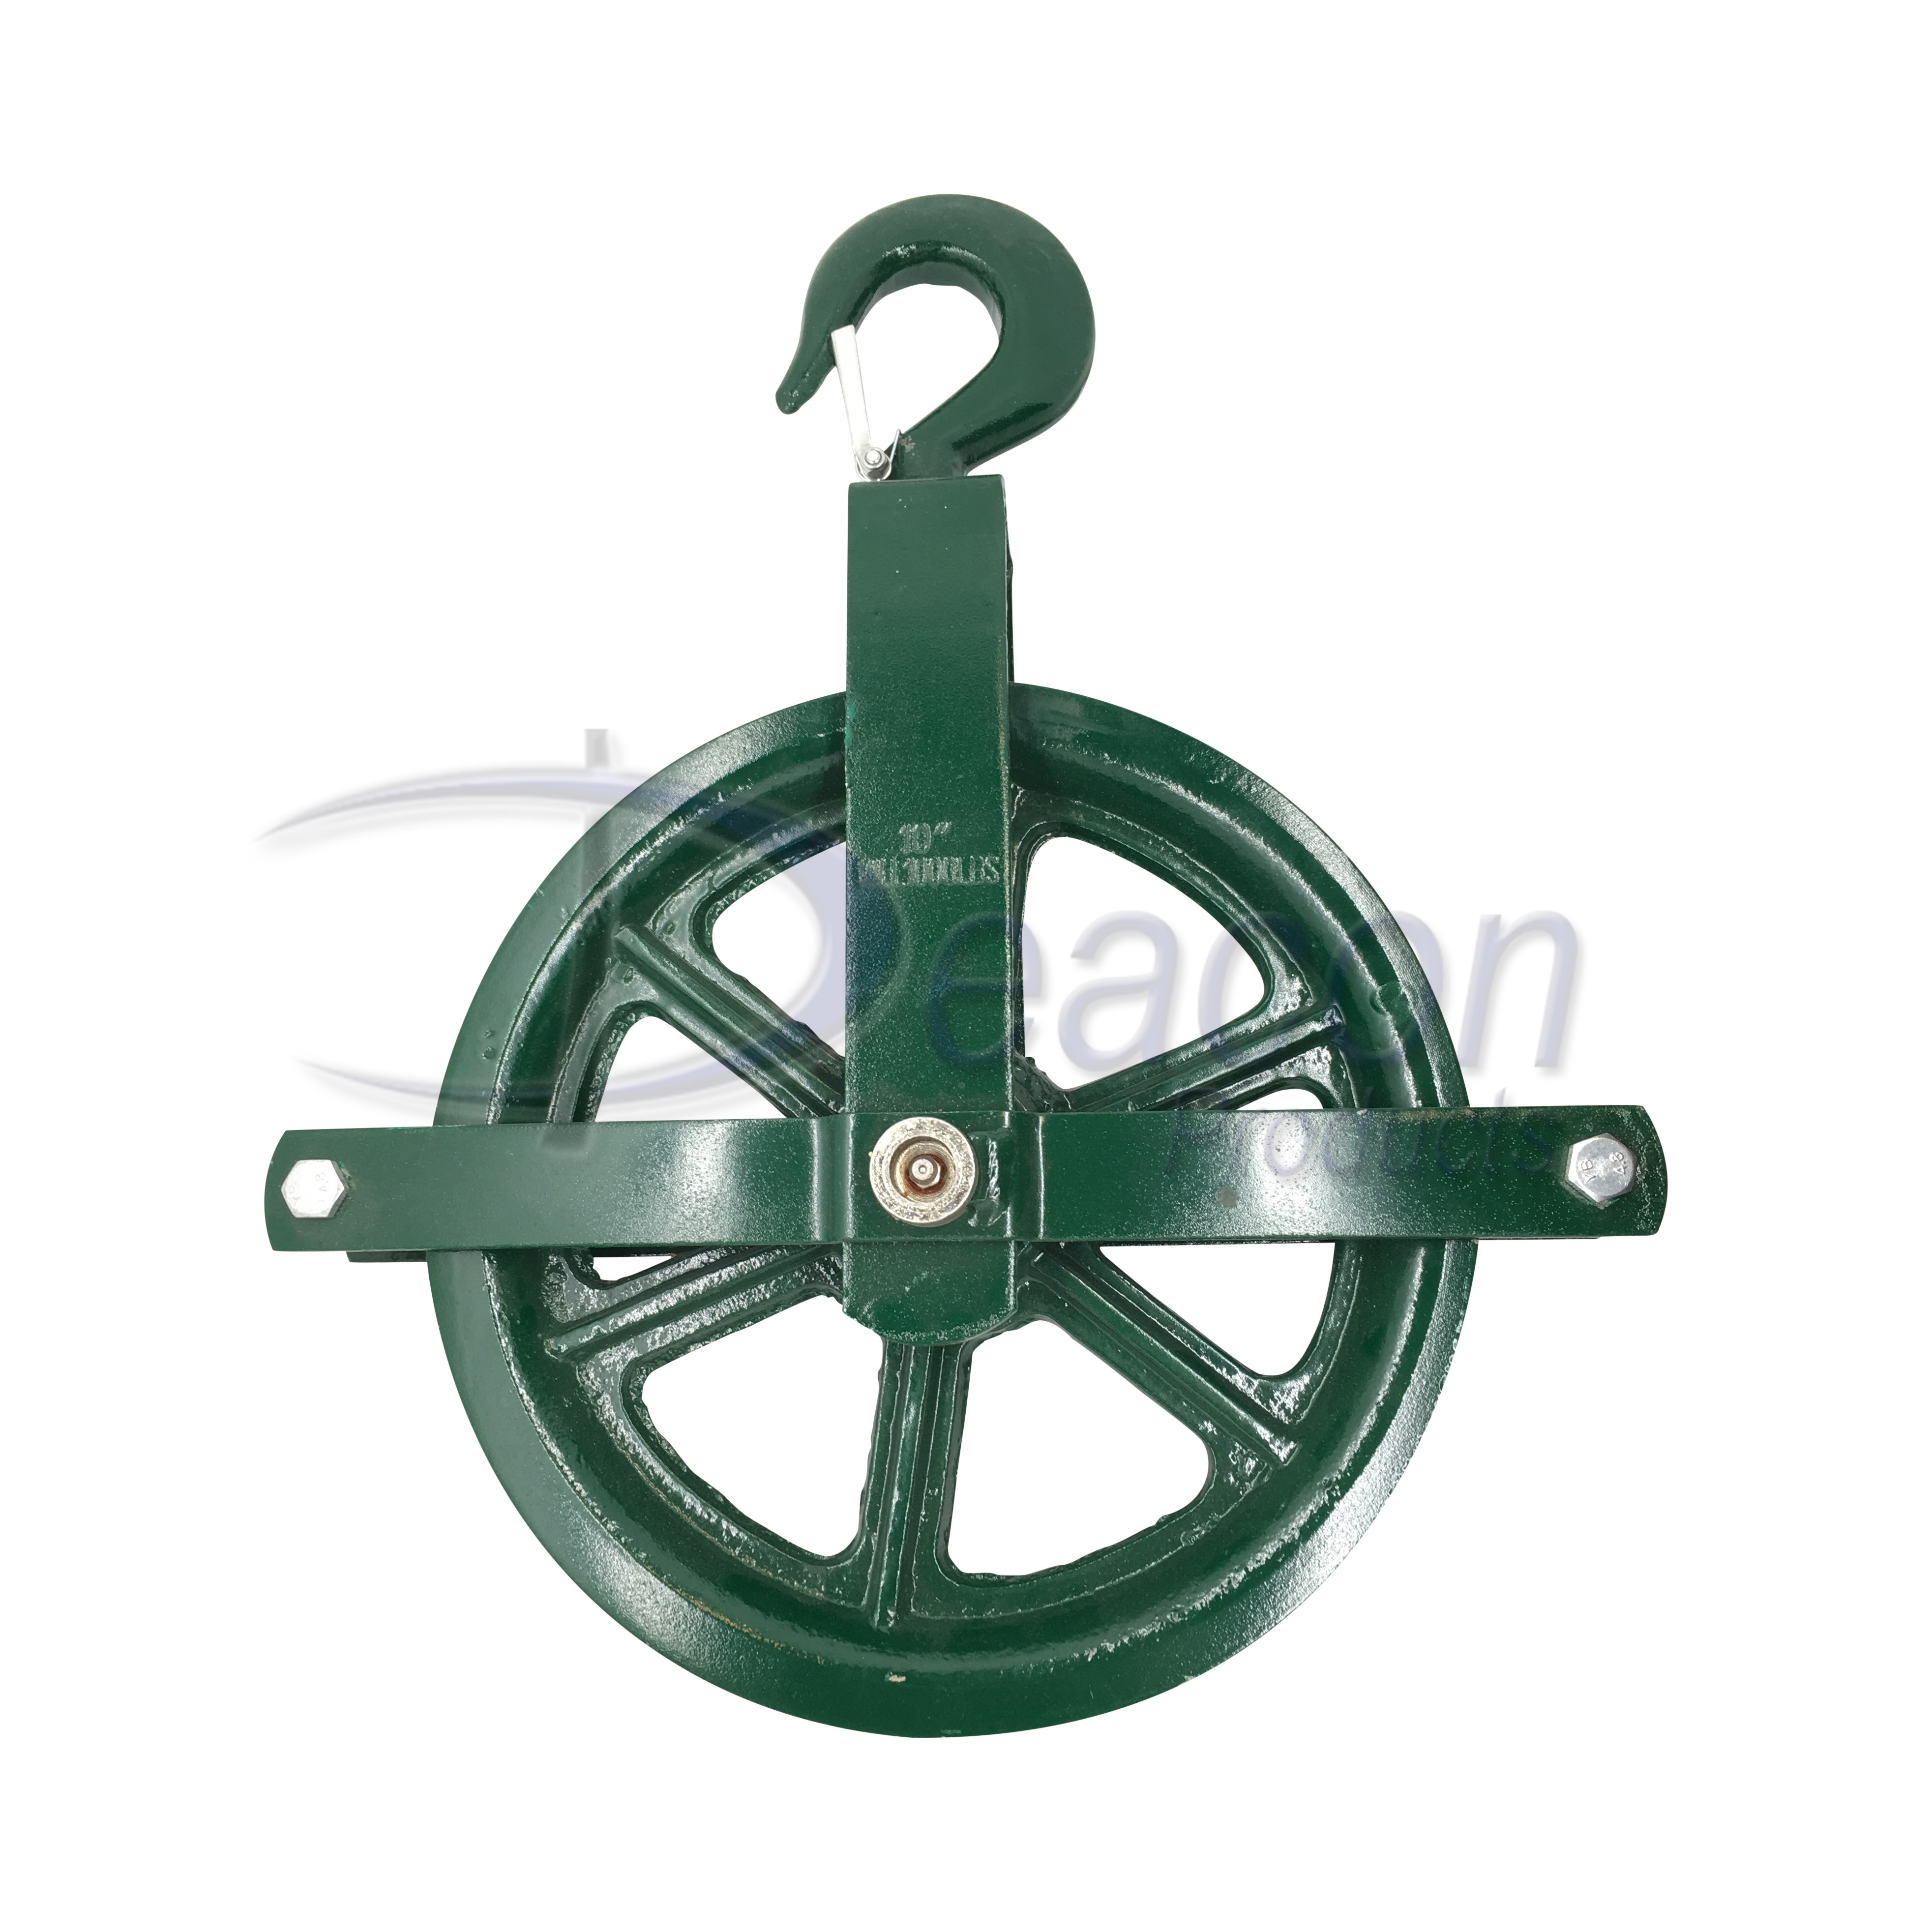 Block Pulley : Green gin pulley block deacon products ltd